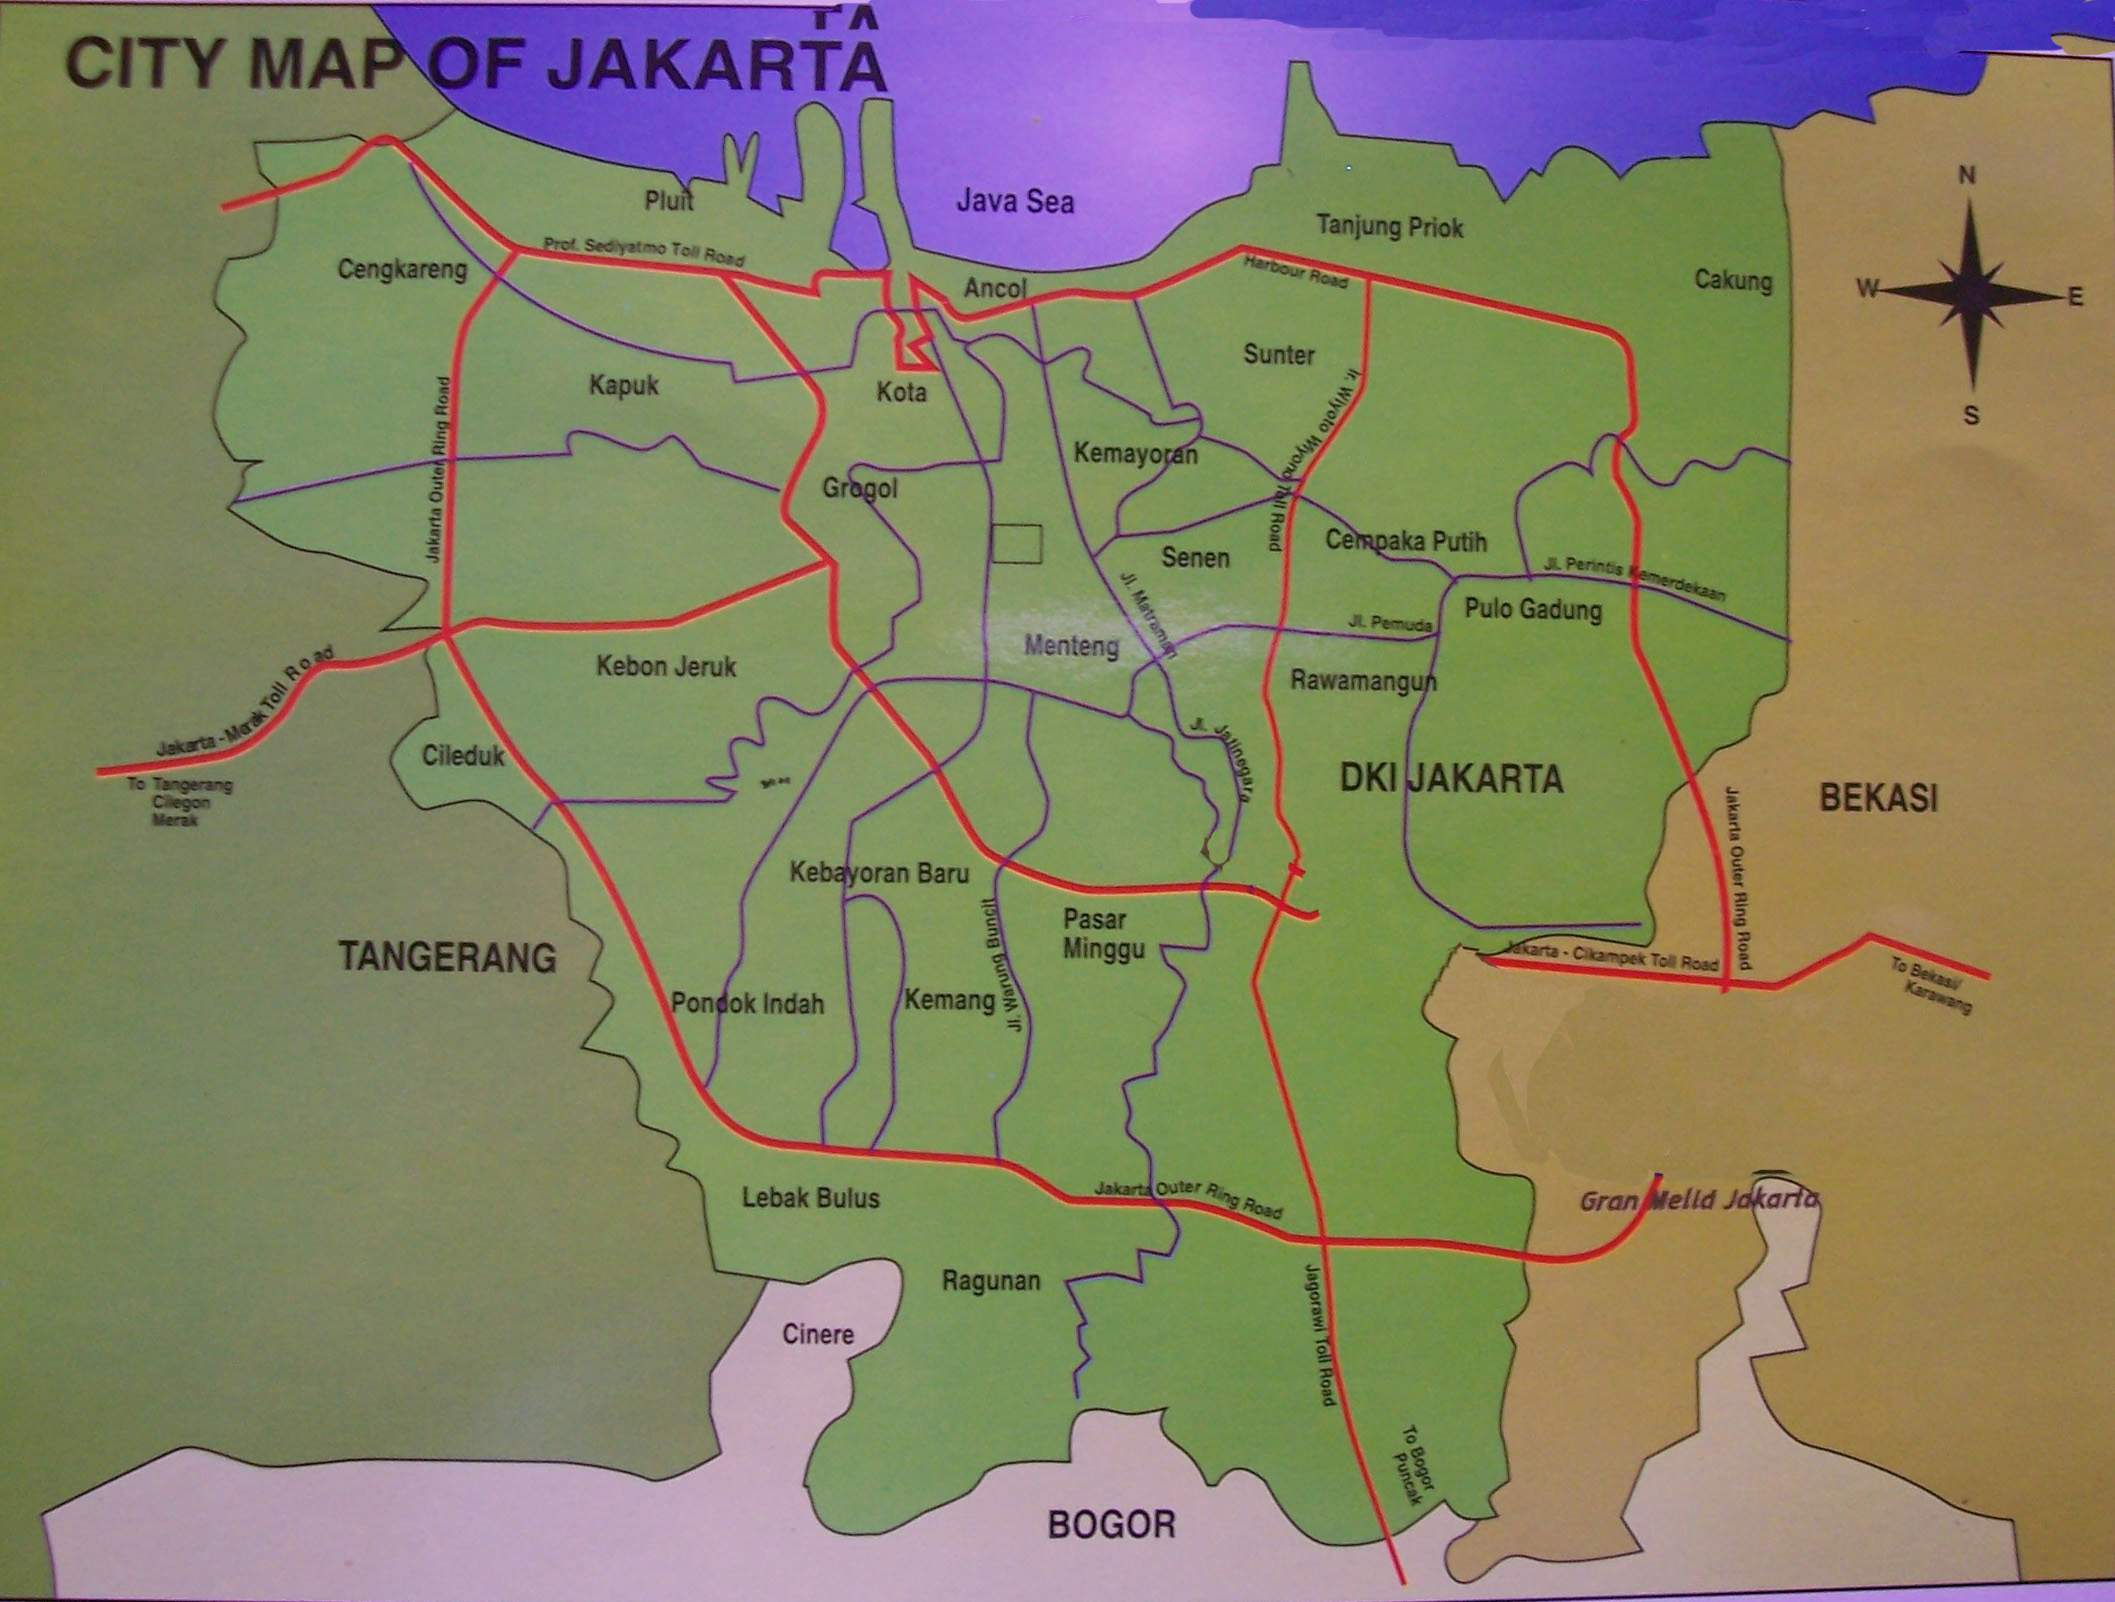 Large Jakarta Maps For Free Download And Print High Resolution And Detailed Maps